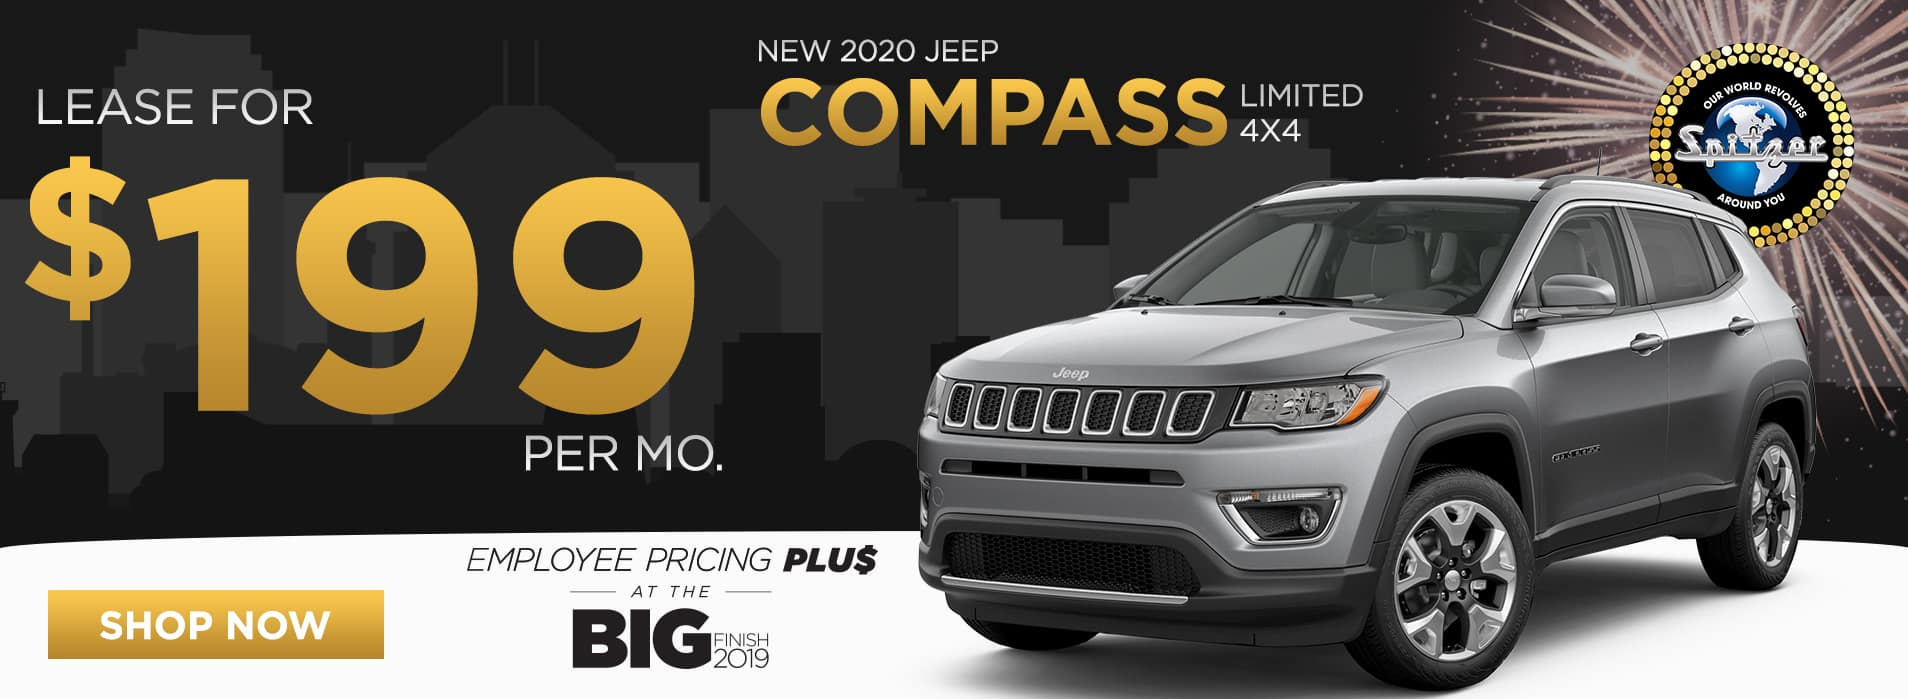 Compass   Lease for $199 per mo